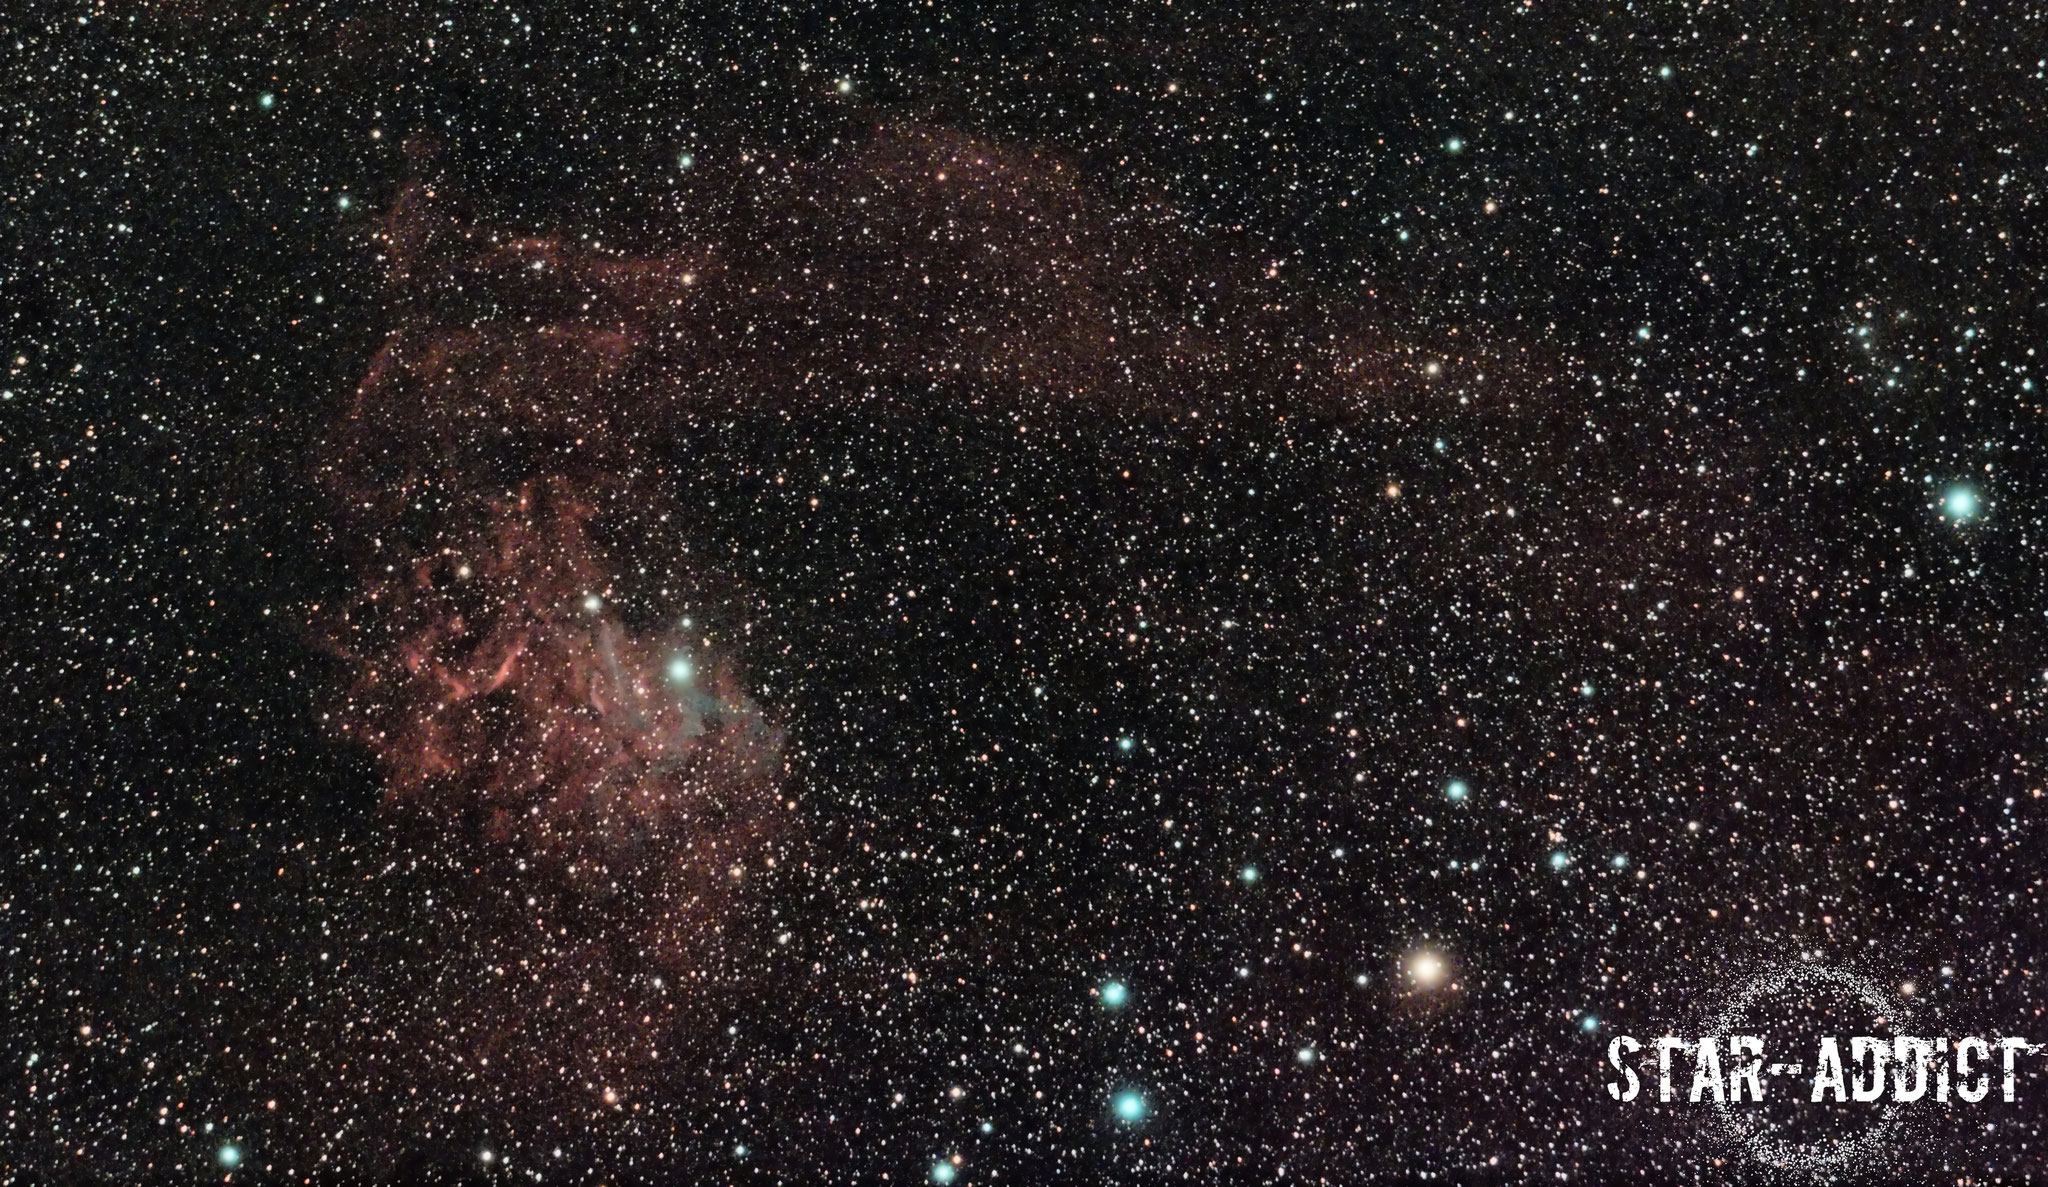 IC405 - Flaming Star Nebula - TecnoSky 80mm Flatfield apo f4.3 - Canon EOS 1300D Astrodon inside - Optolong CLS Clip in filter - 120 (24x5') minutes guided